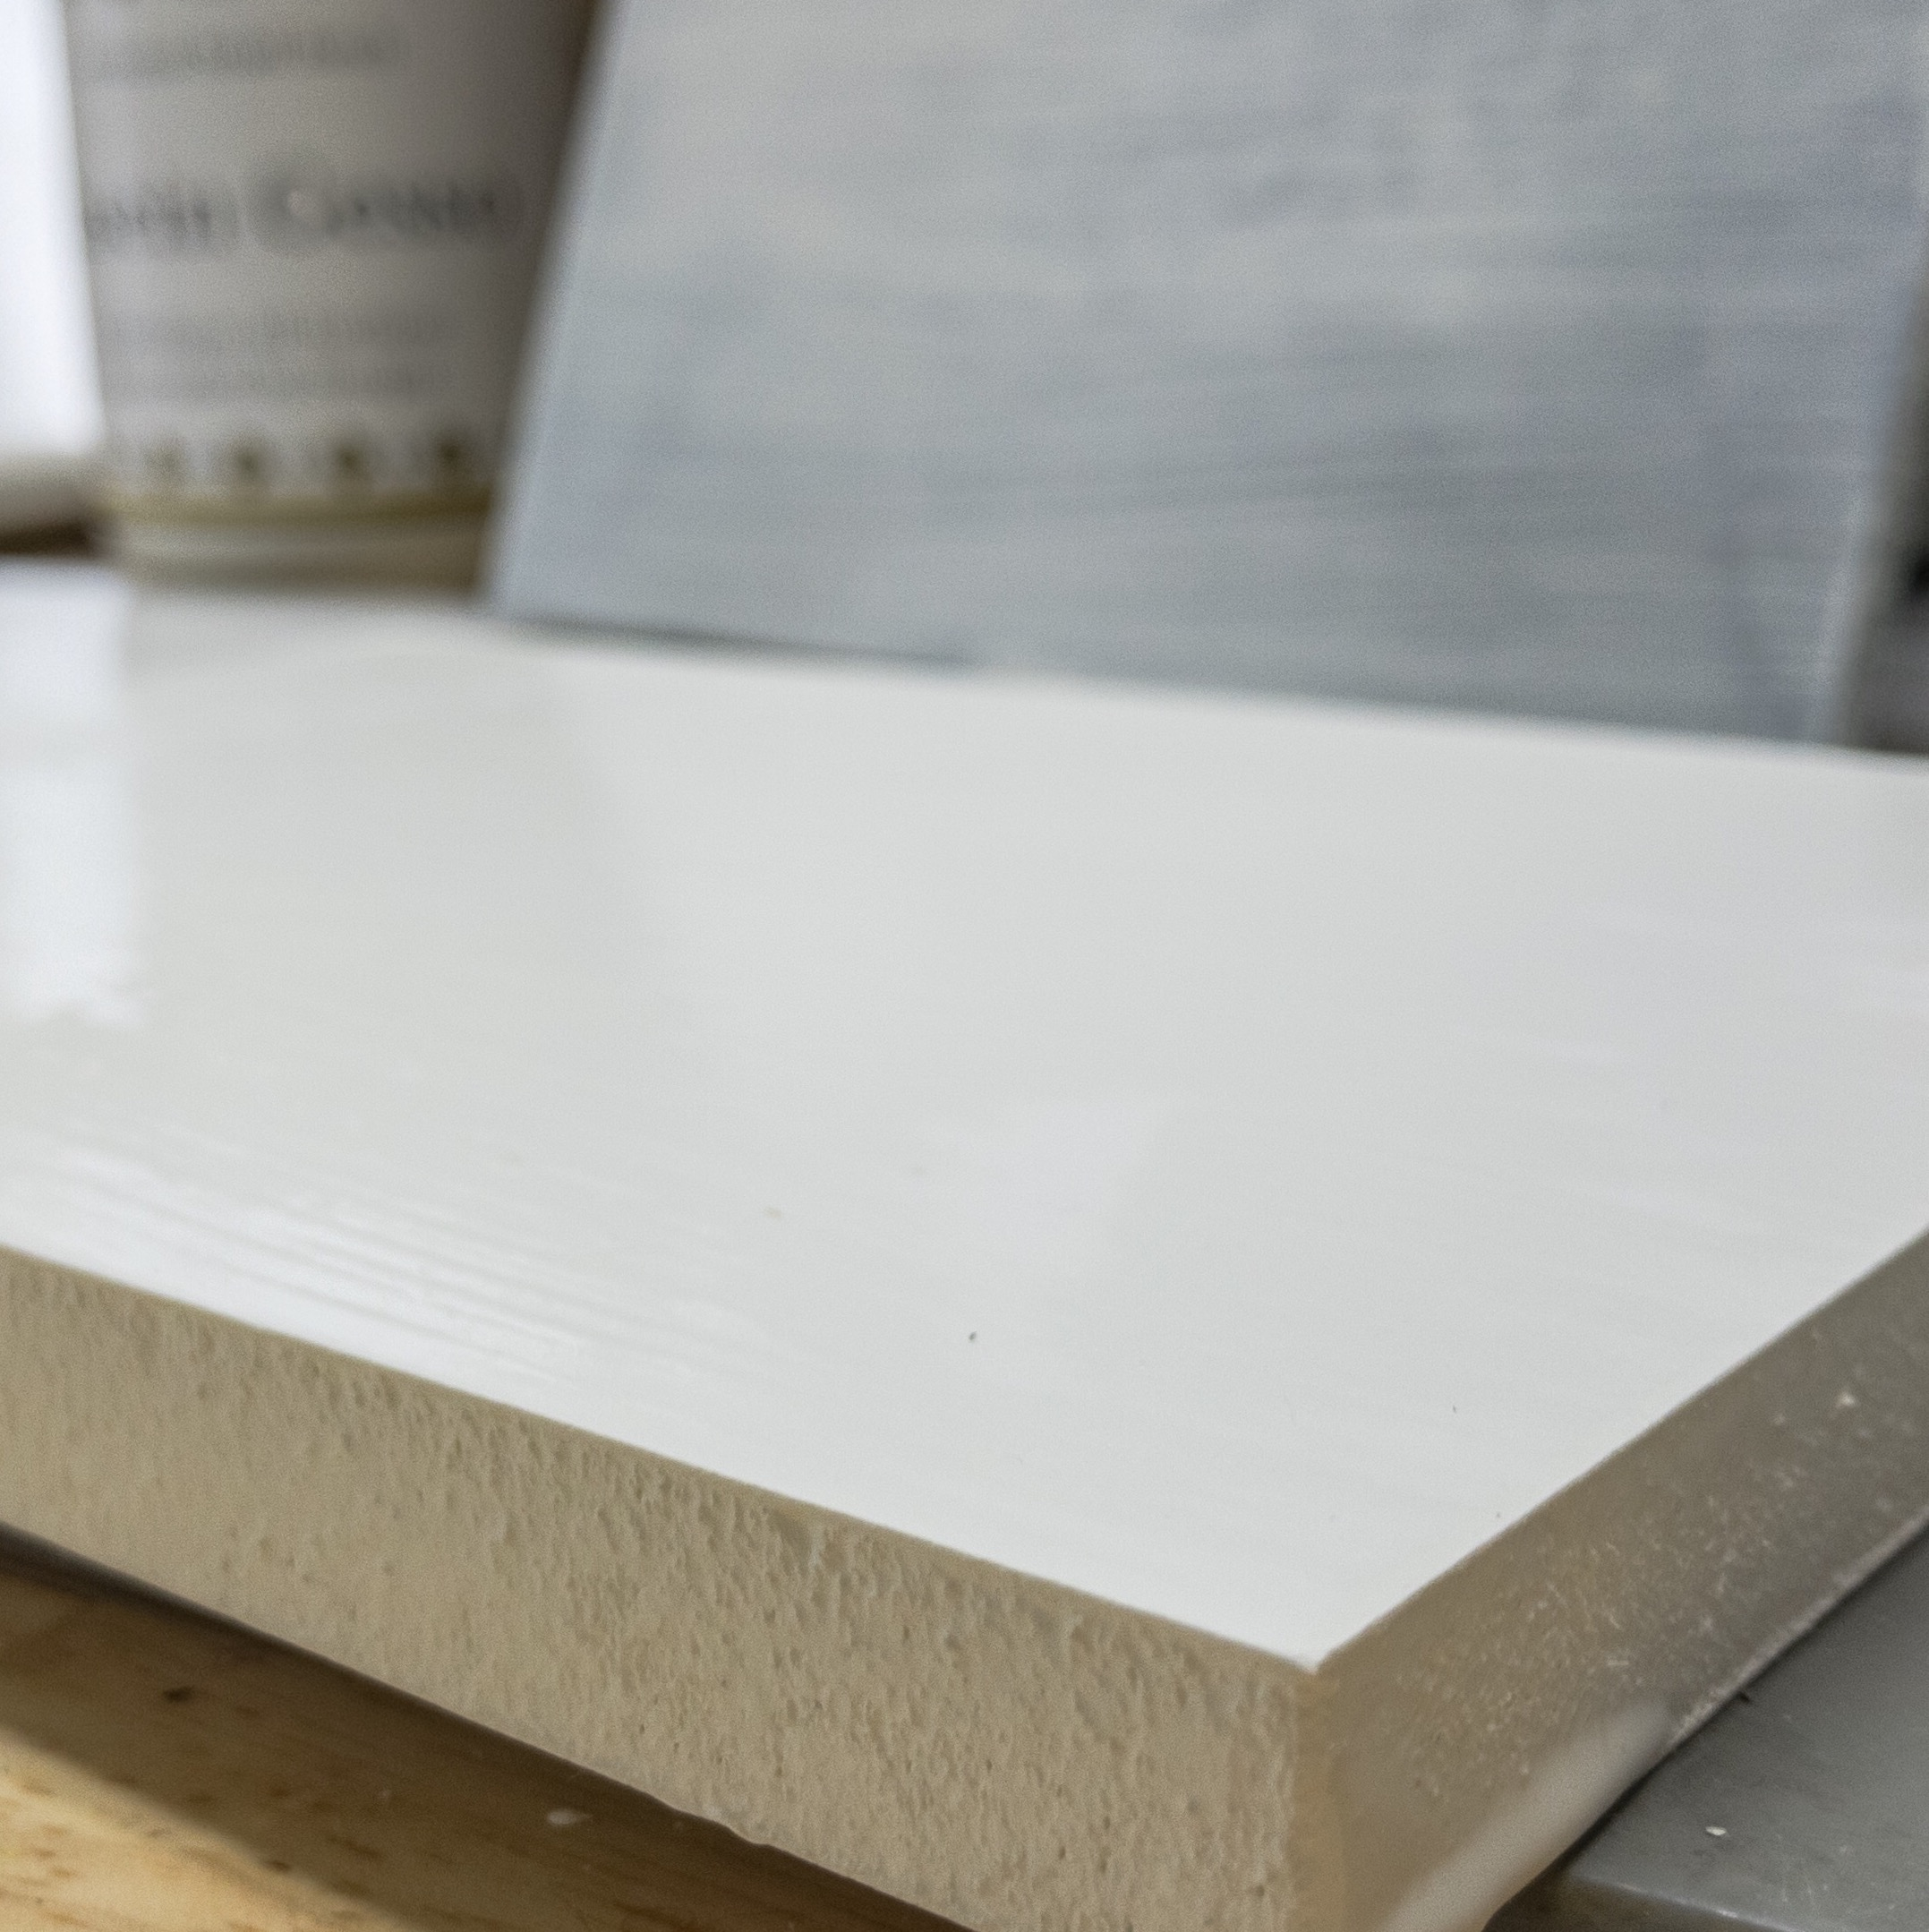 Foam edge treated with casein gesso as barrier to prevent direct contact with mineral spirit or turpentine. The foam will deteriorate if contact is made.